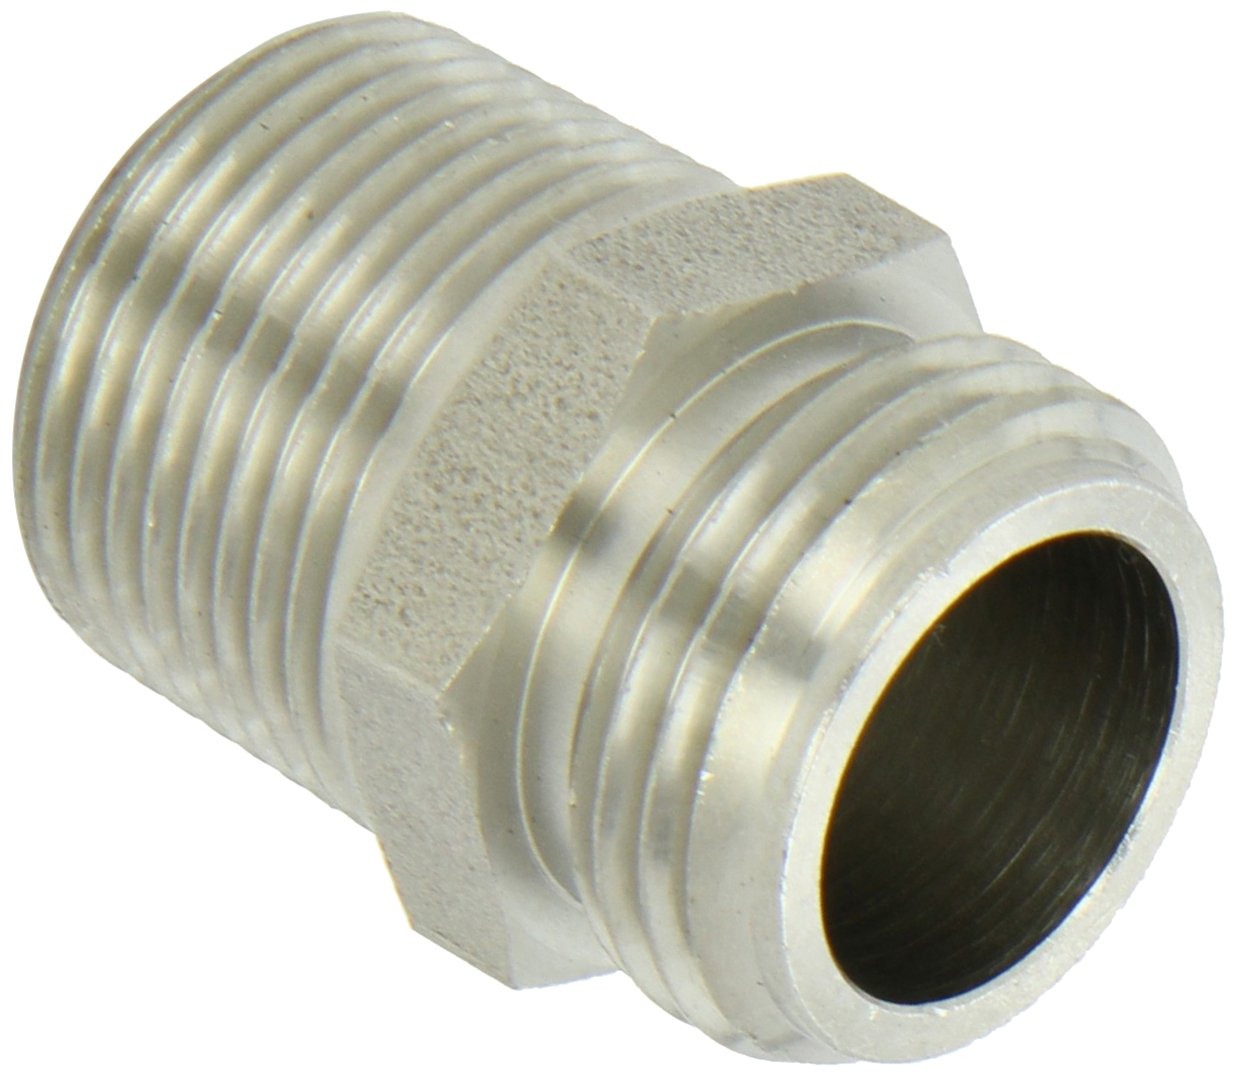 Dixon RA776 Stainless Steel 303 Brass Fitting, Adapter, 3/4'' GHT Male X 3/4'' NPTF Male